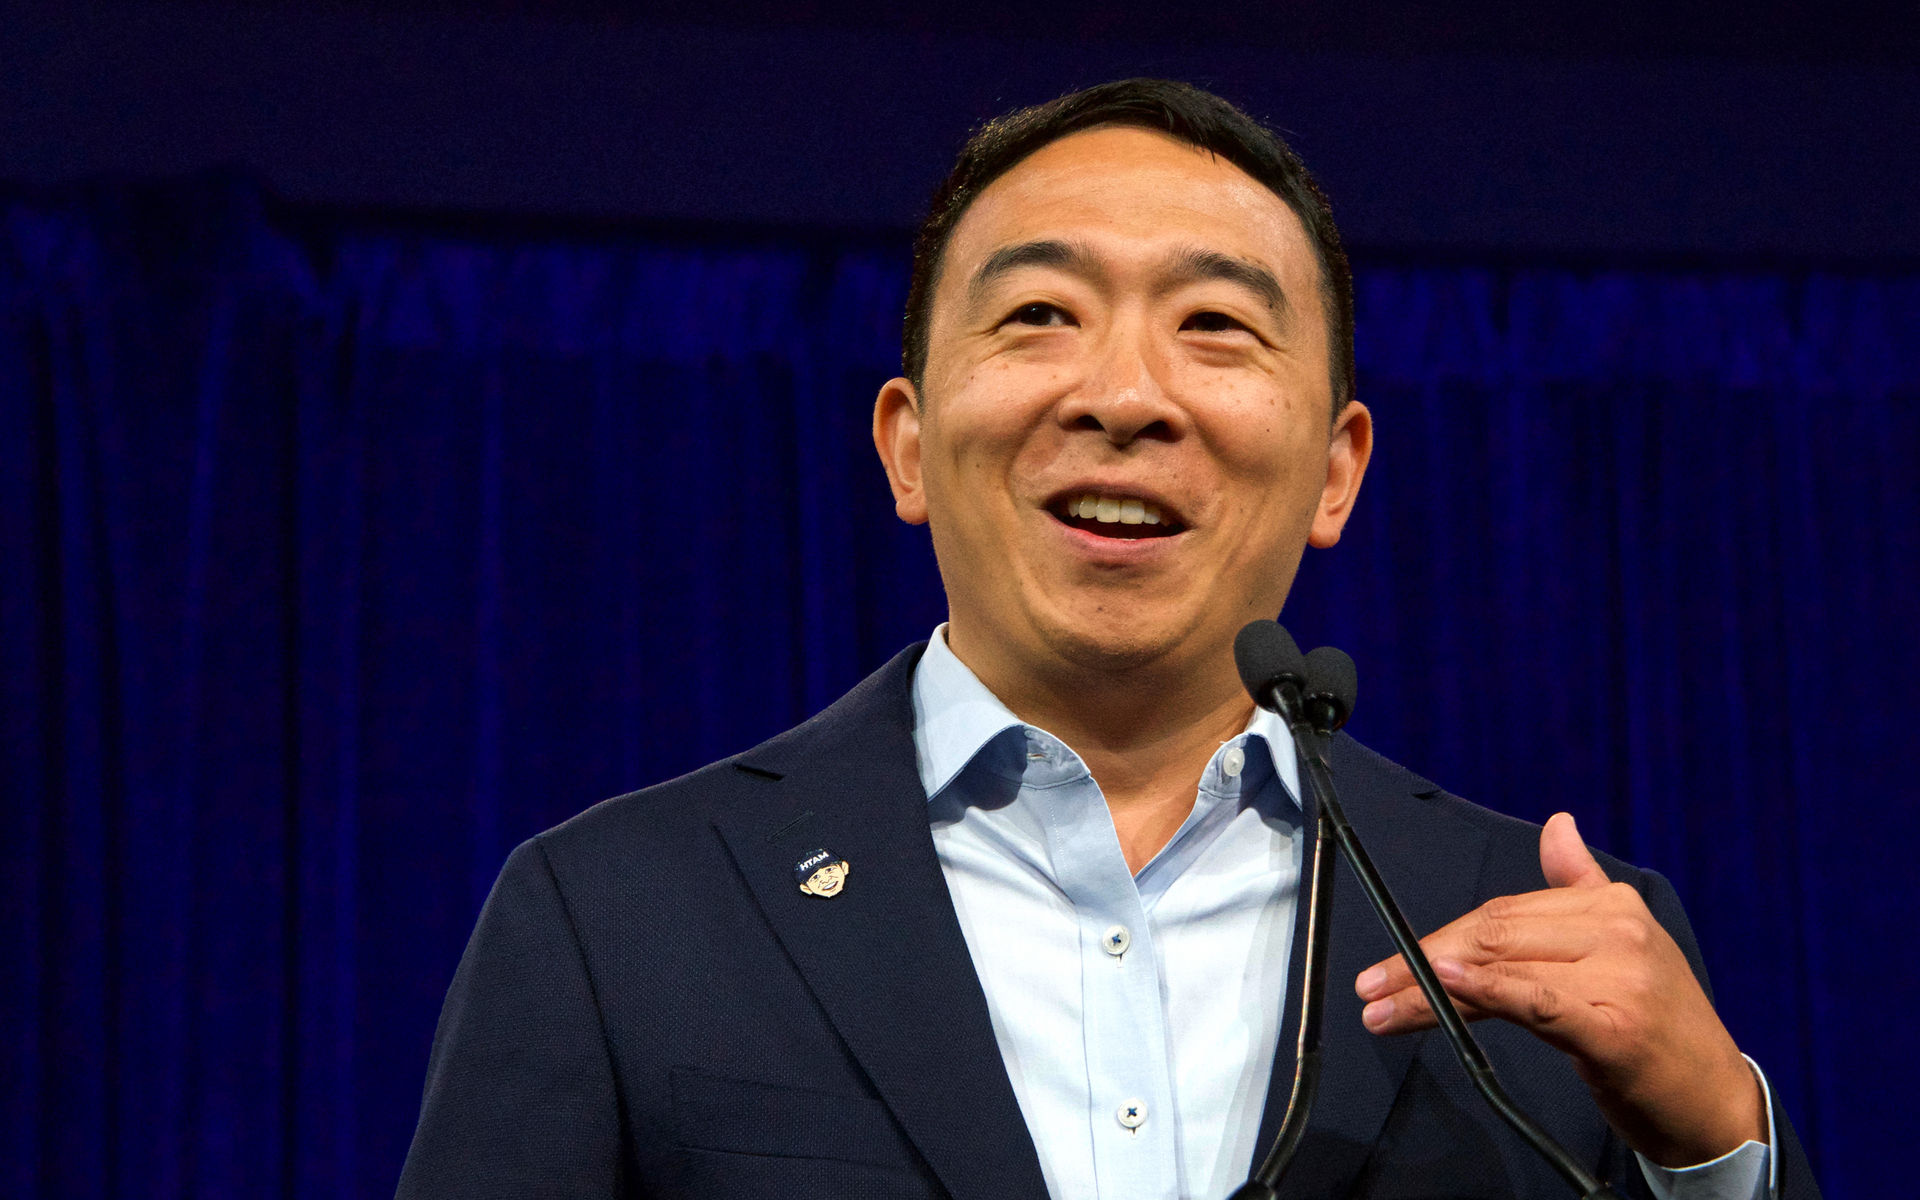 Andrew Yang POTUS candidate crypto